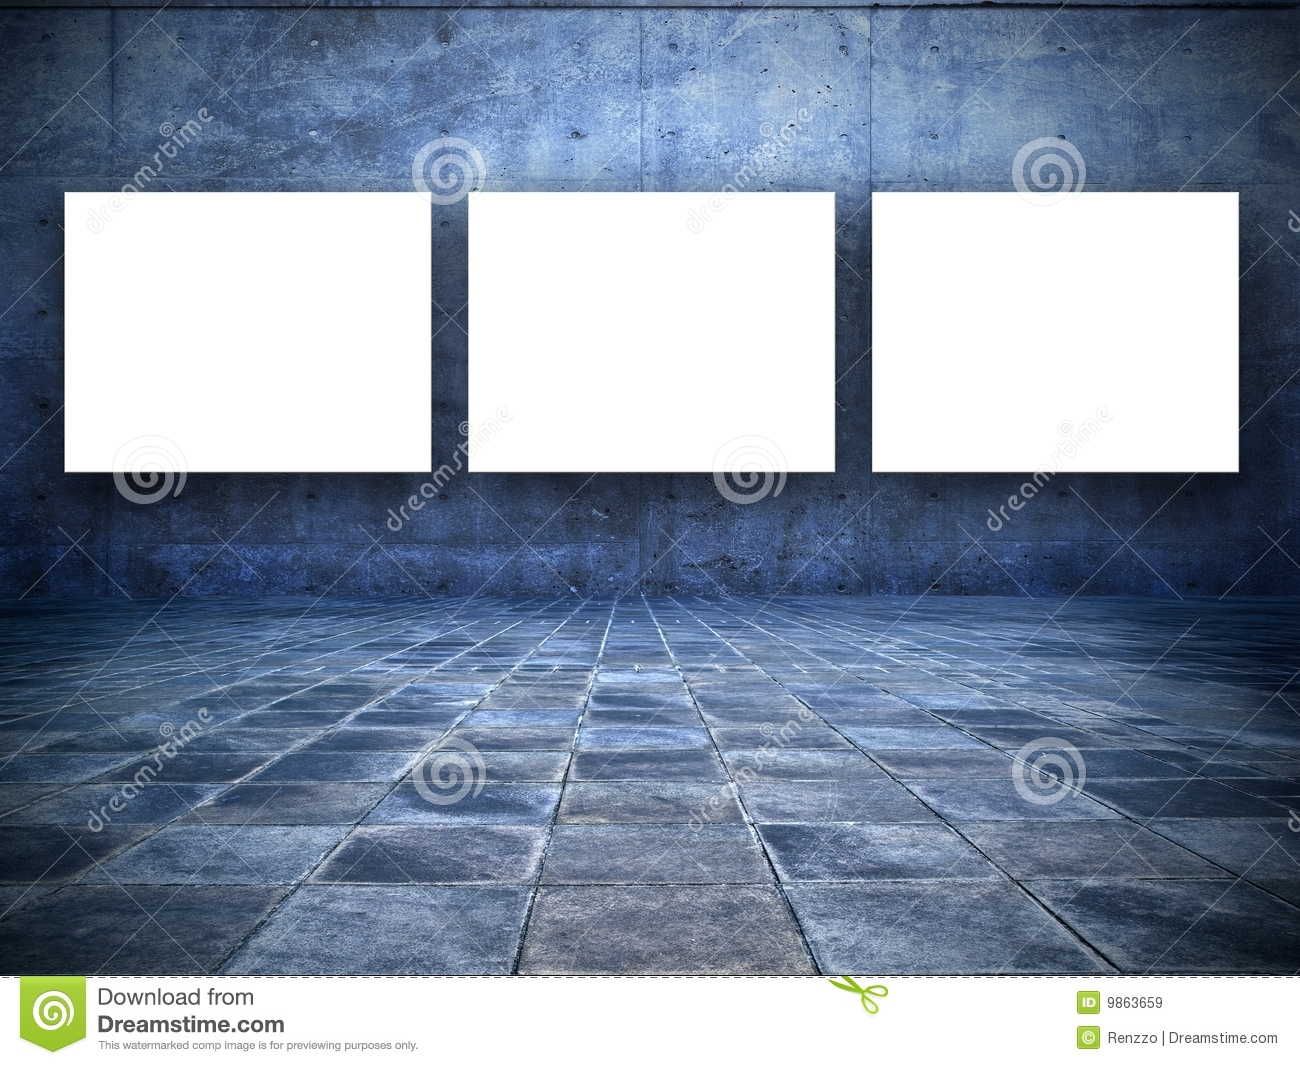 Grungy room with three blank white screens